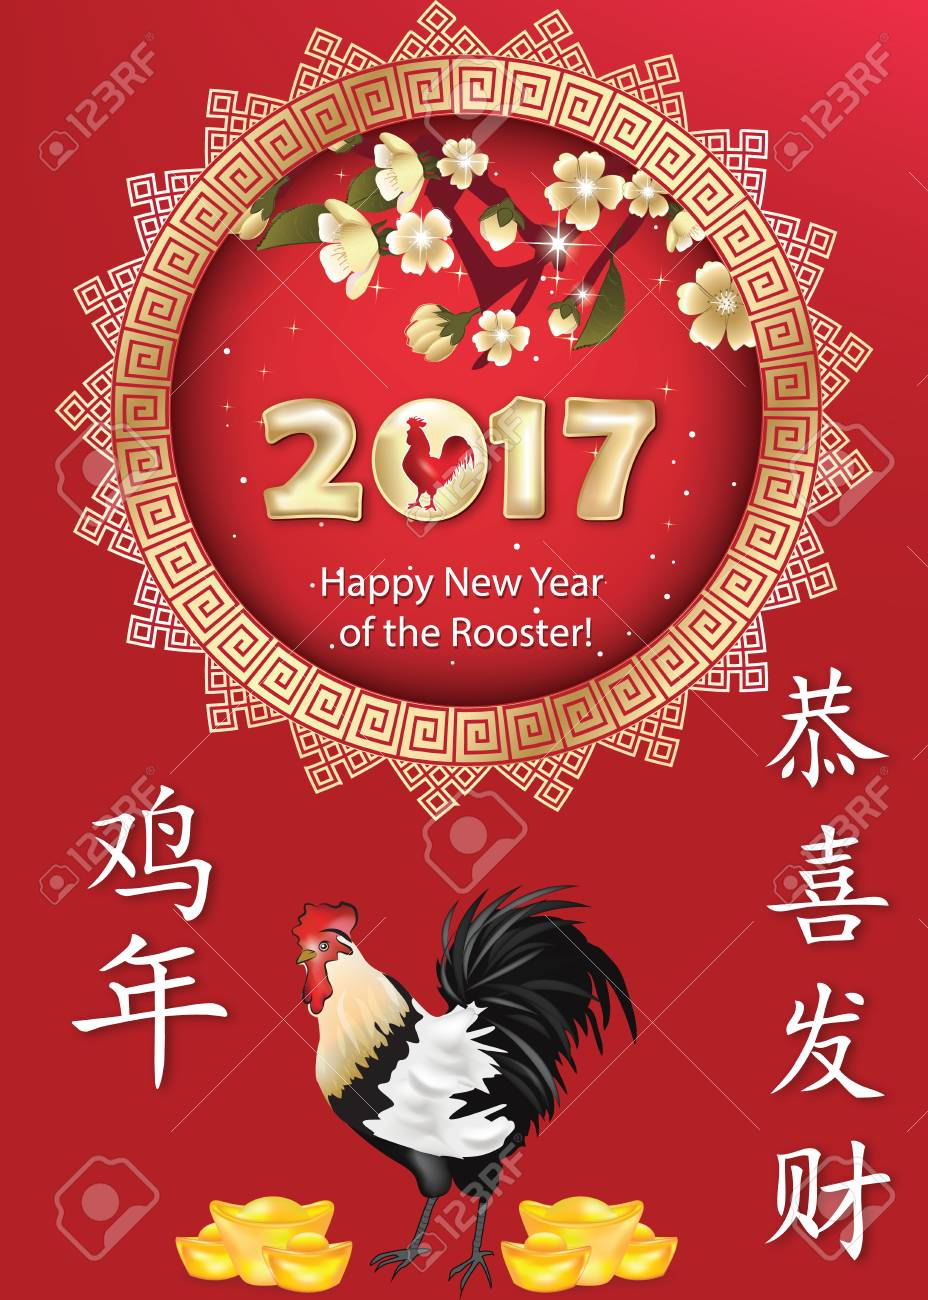 Chinese New Year Of The Rooster 2017 Greeting Card Chinese